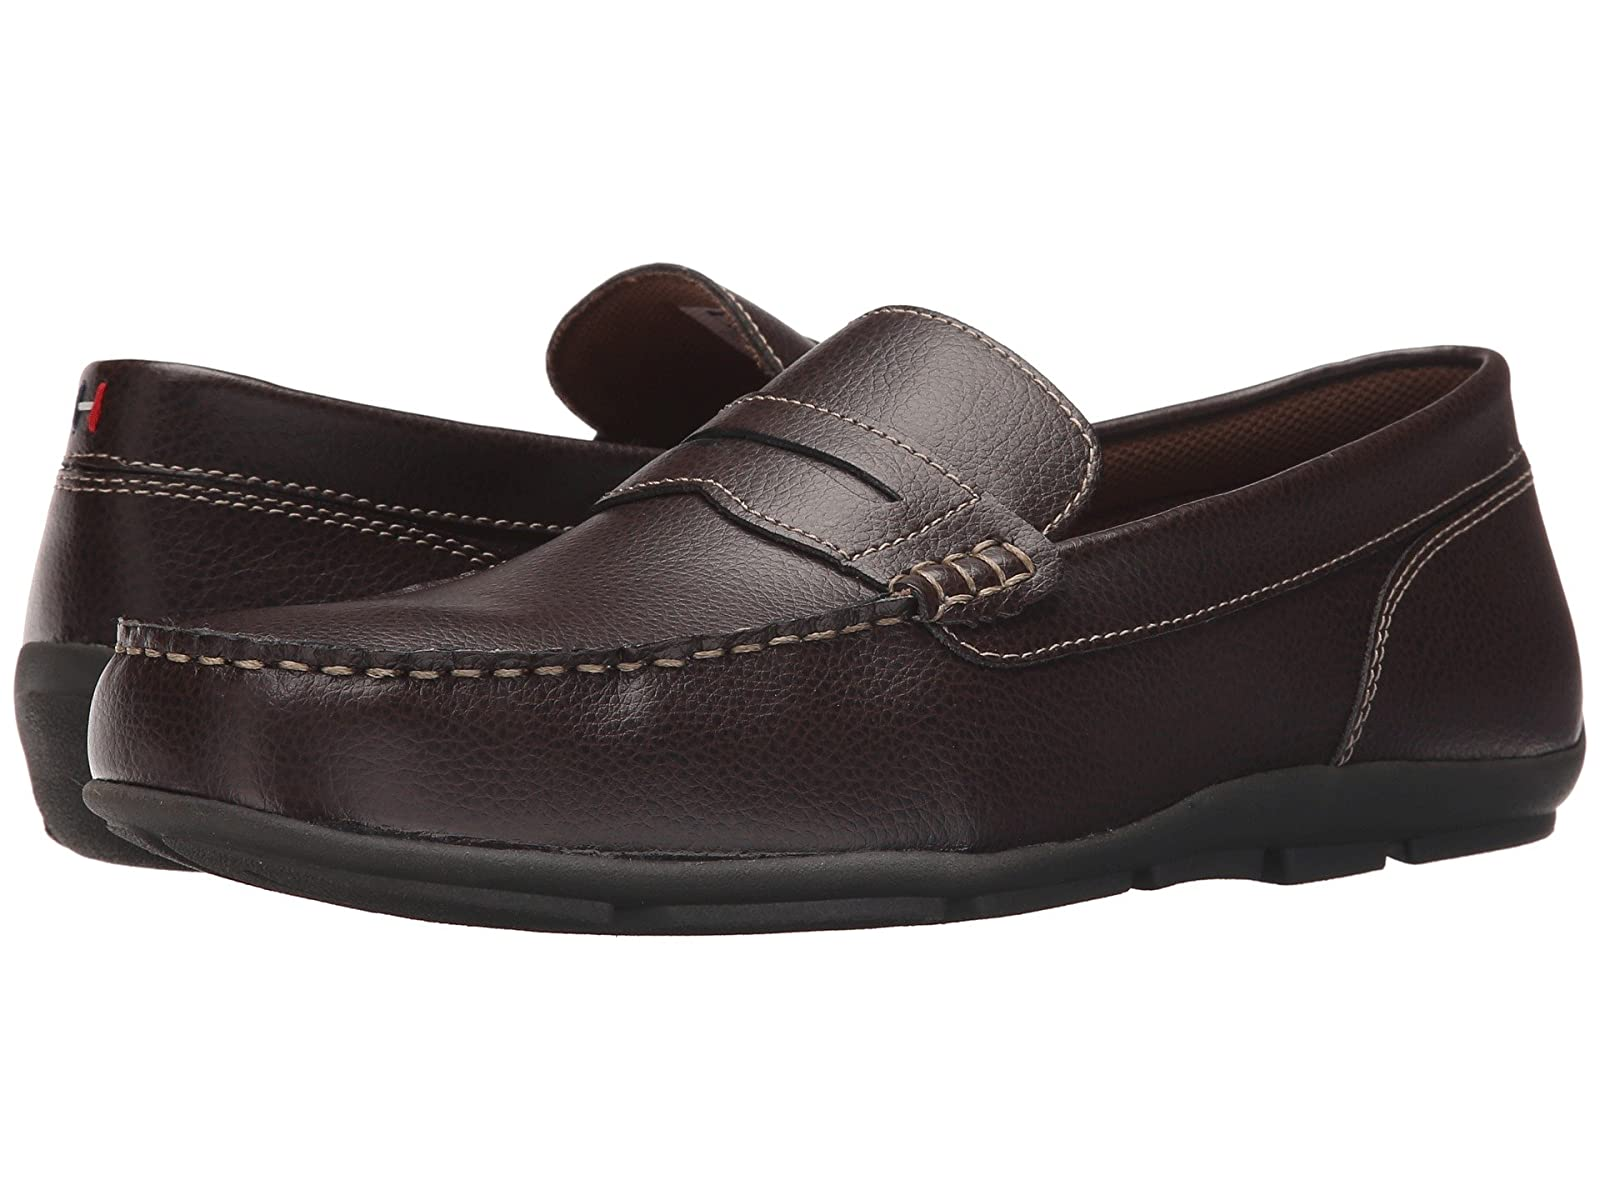 Tommy Hilfiger DaveyCheap and distinctive eye-catching shoes